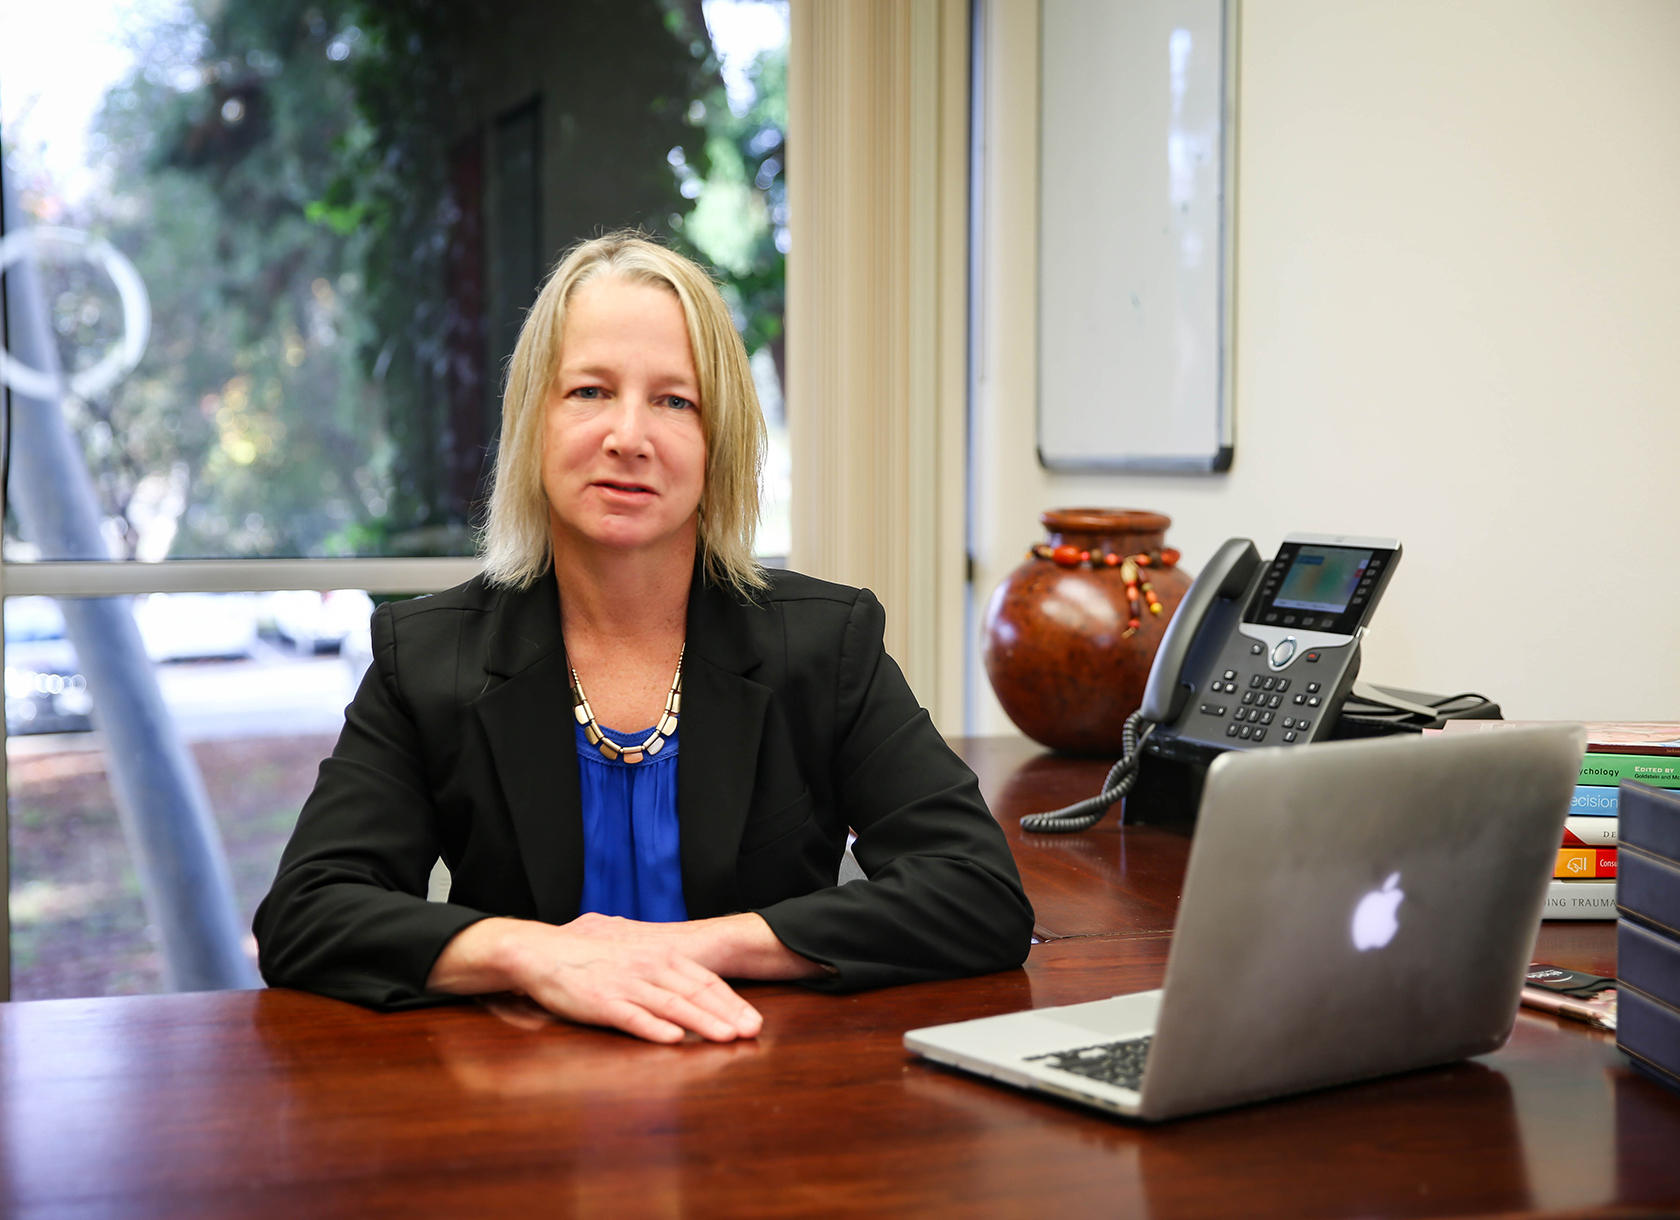 Blonde white woman in blazer sits behind desk with laptop